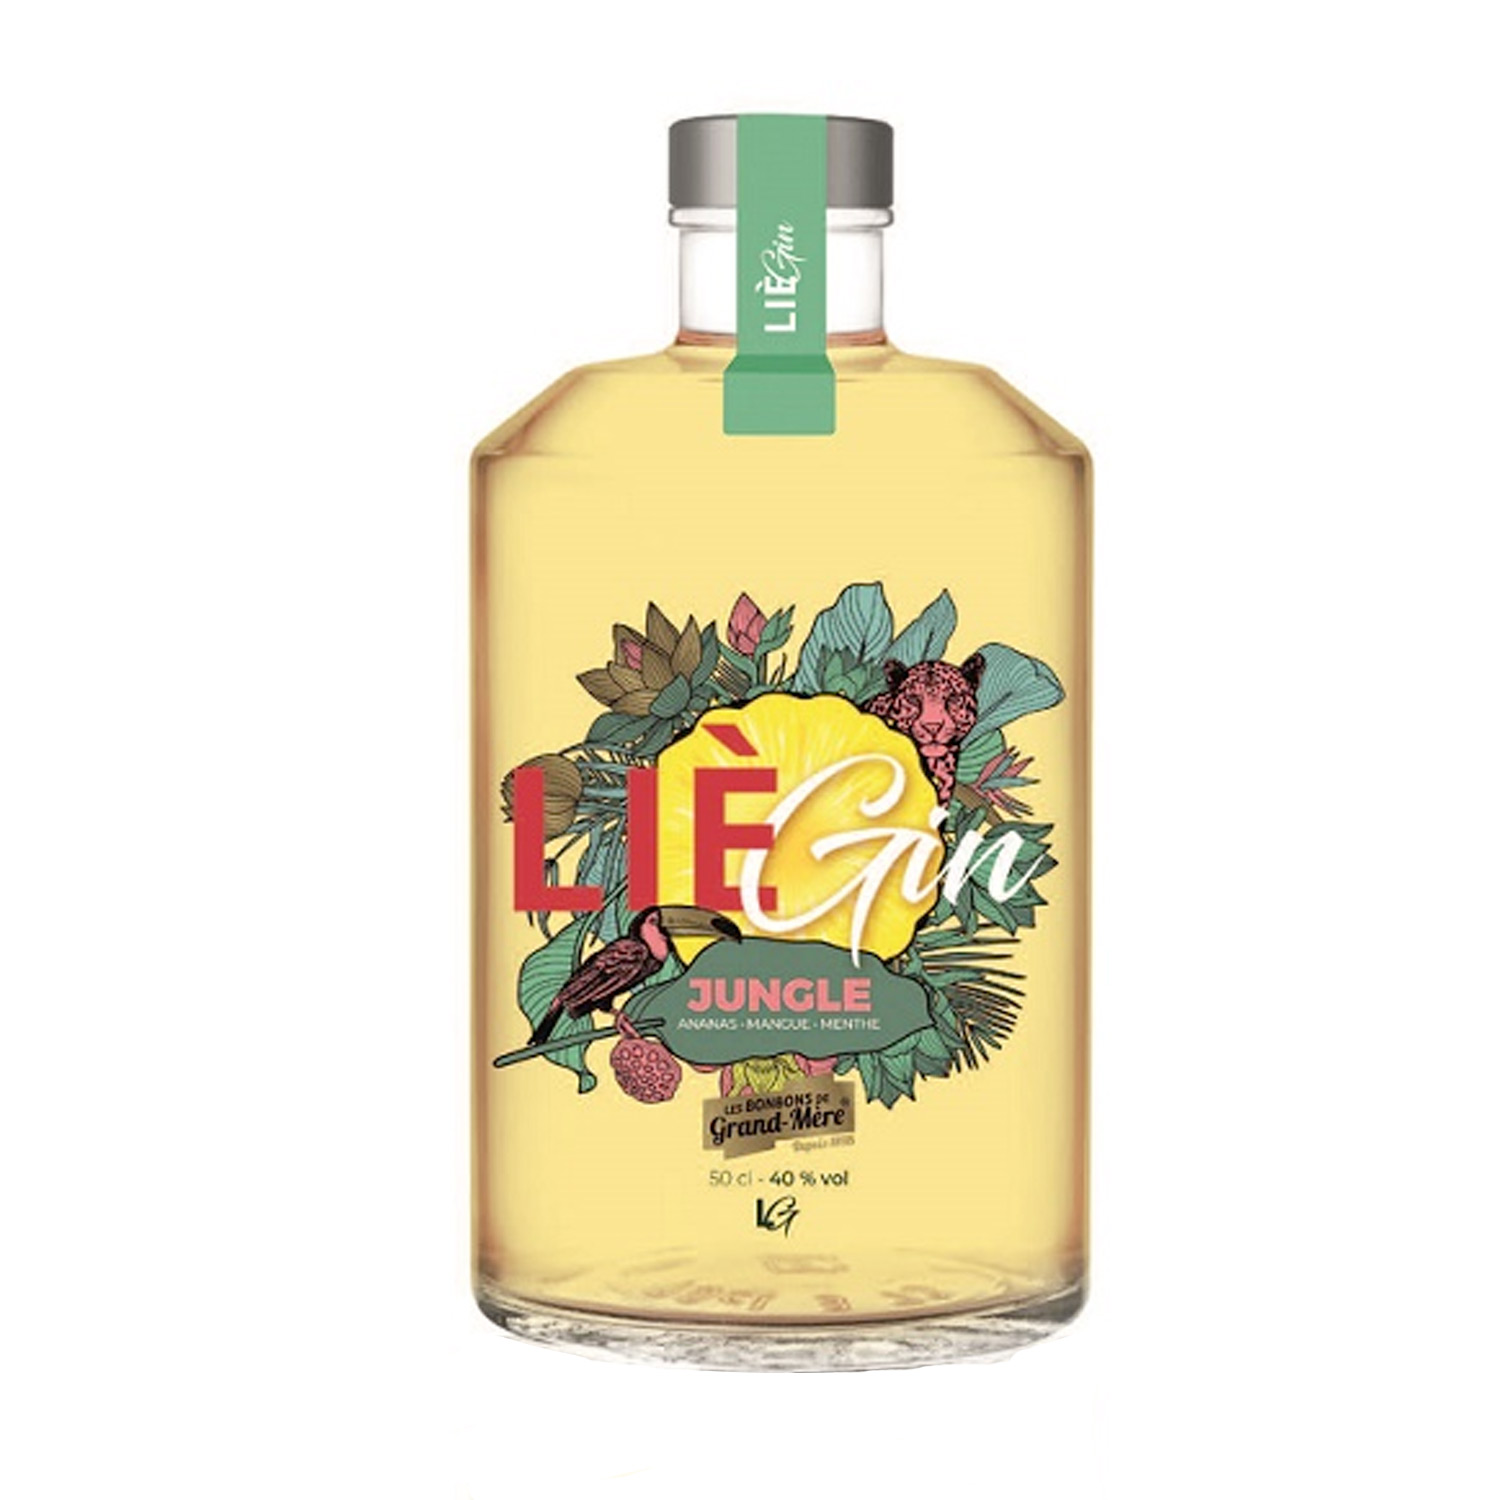 Gin - LieGin - Jungle - Belgique - 50 cl - 40° - Bio